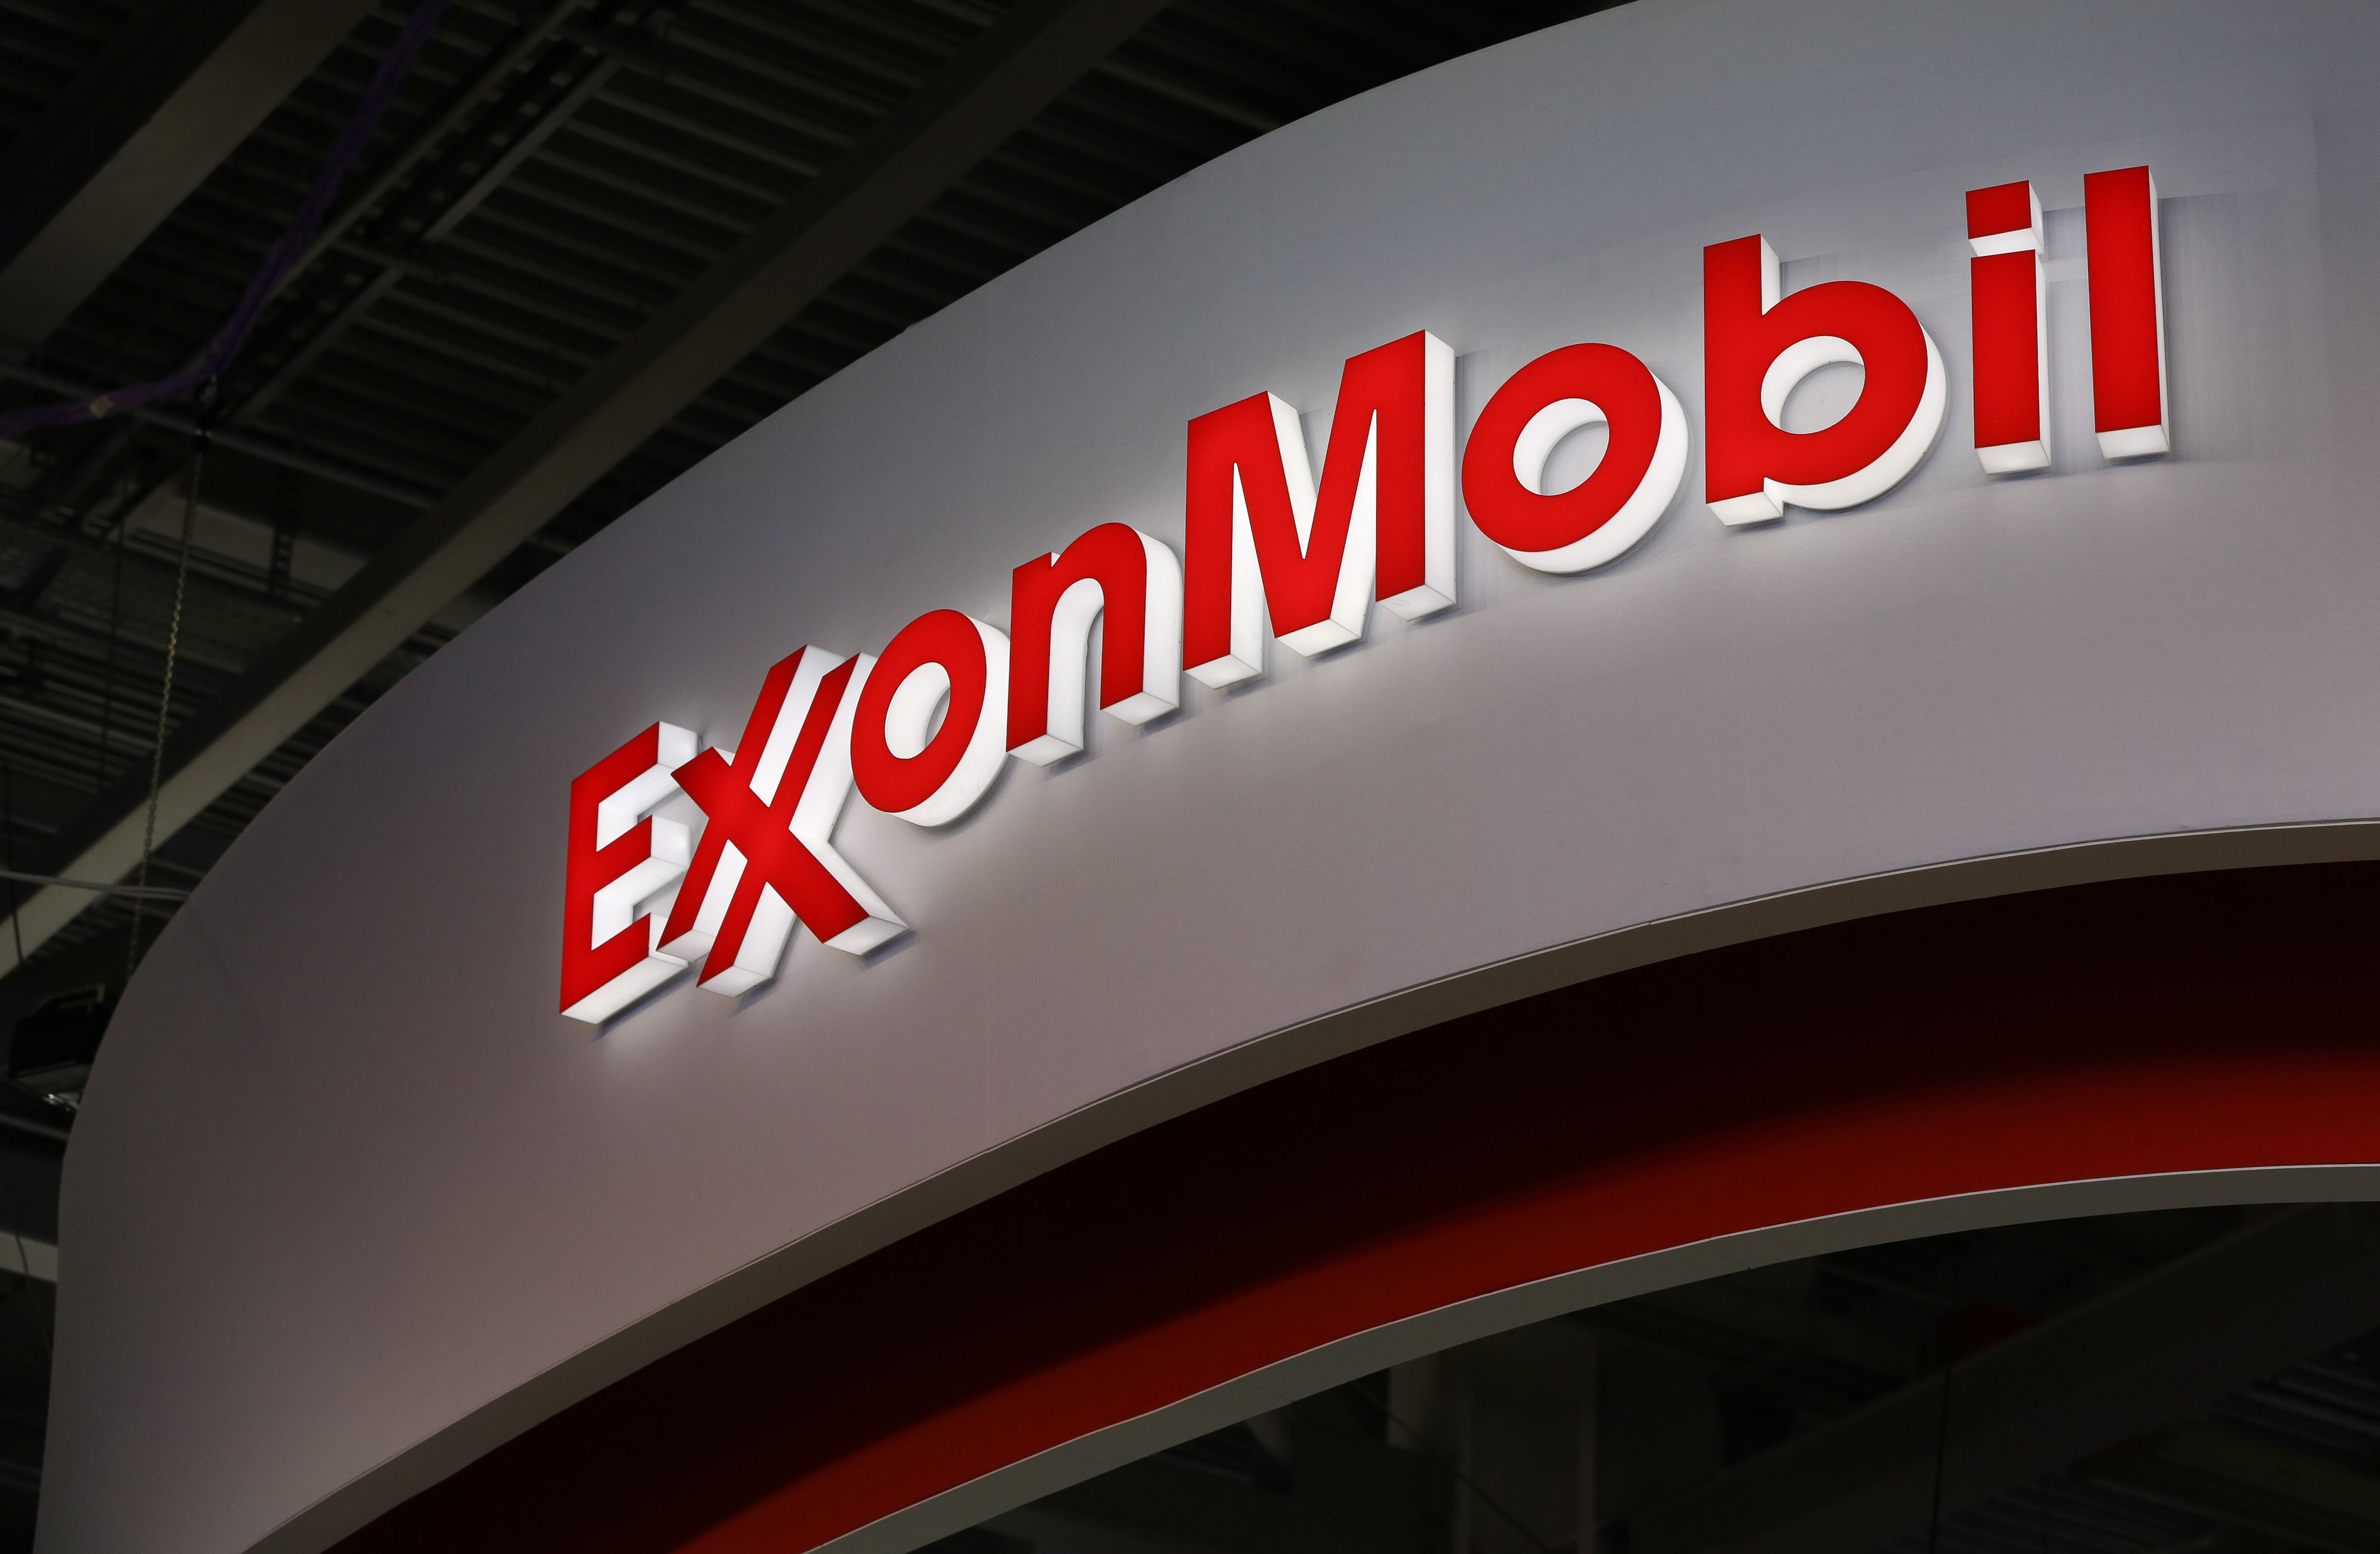 <strong>Exxon Mobil</strong> In 2013, Exxon Mobil's total revenue dropped 8.8% to $438.26 billion, and net income fell an even steeper 27%. Oil production took a tumble in 2013, all while capital and exploration expenditures increased. While Exxon has said it plans to start production at a record 10 major projects this year, capital spending is expected to decline 6.4% from 2012. Deepwater projects in the Gulf of Mexico and a liquefied natural gas project in Papua New Guinea are among the ventures scheduled for this year.